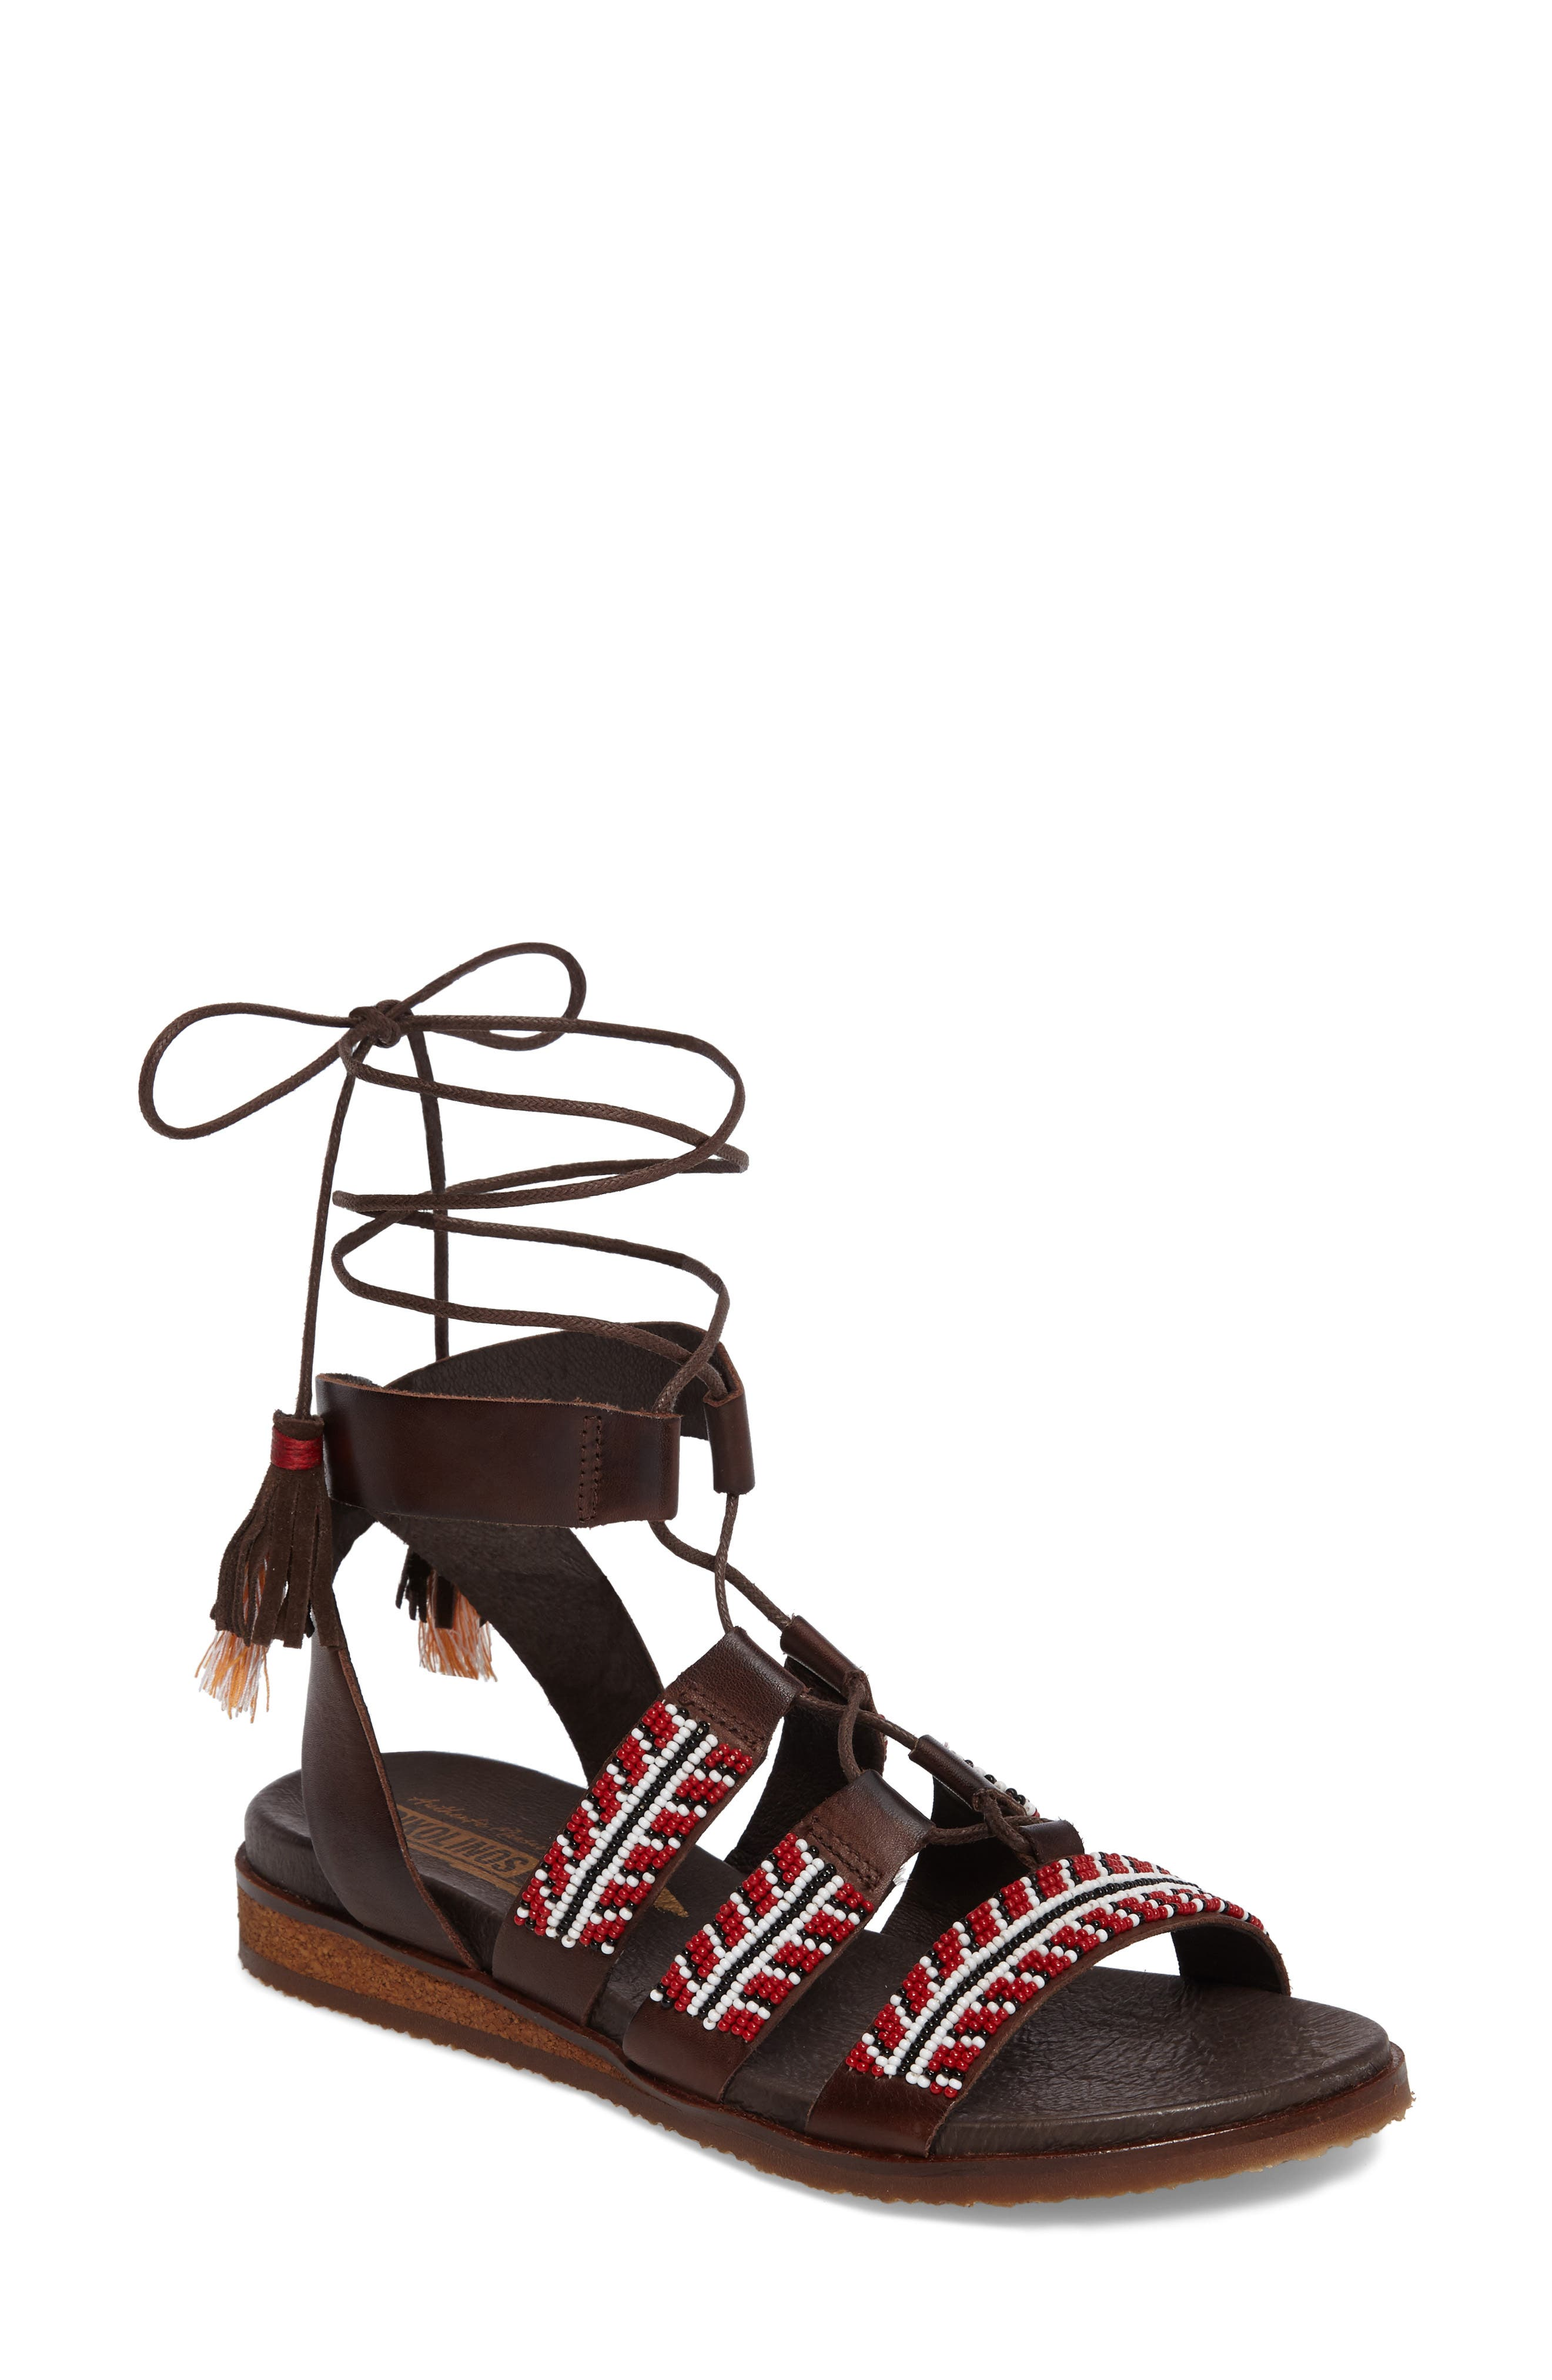 Antillas Beaded Ghillie Sandal,                         Main,                         color, Olmo Leather